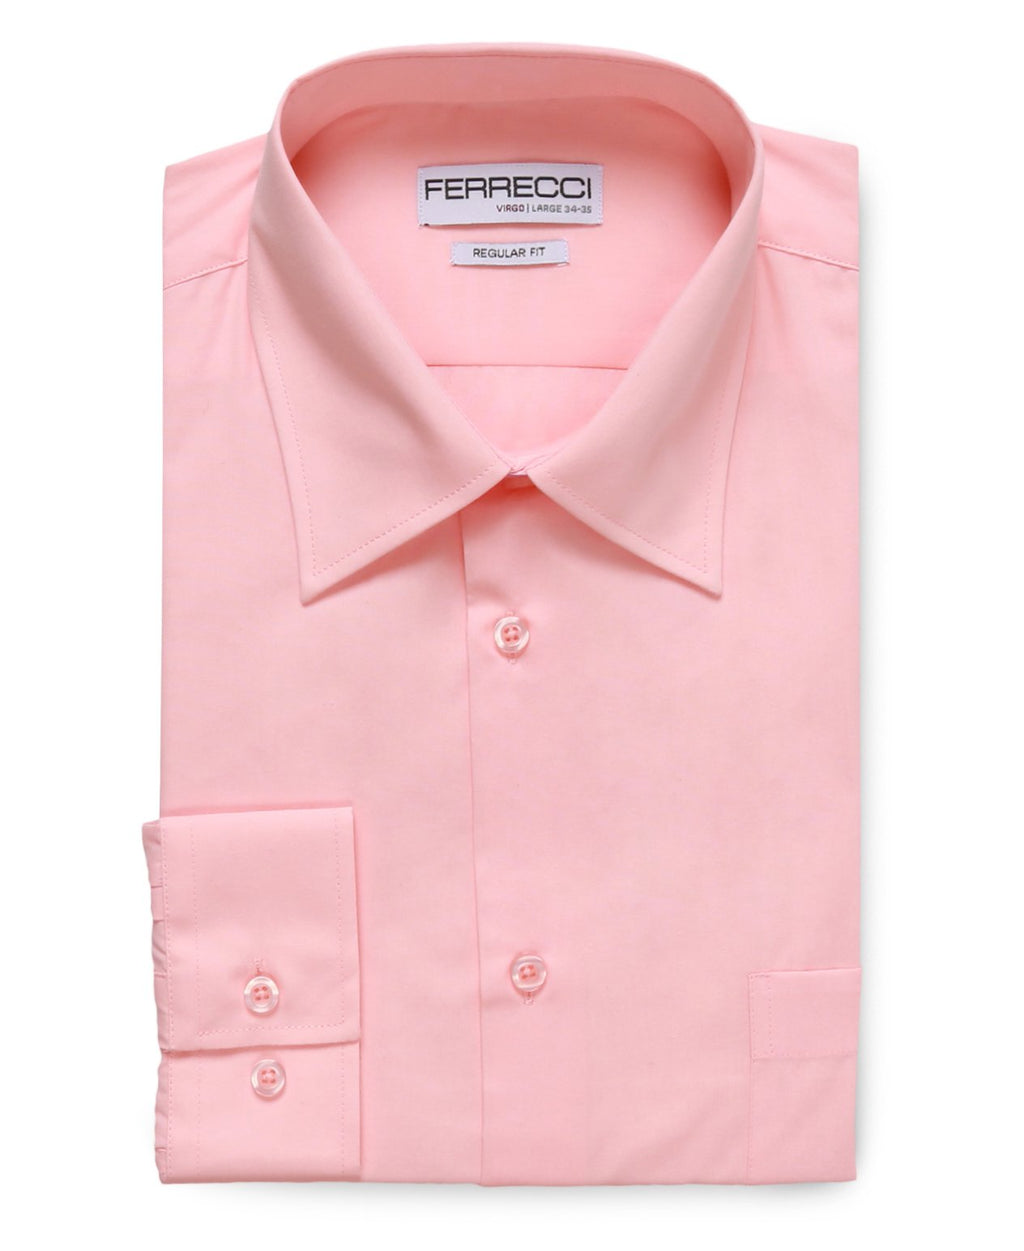 Virgo Pink Regular Fit Dress Shirt - Giorgio's Menswear